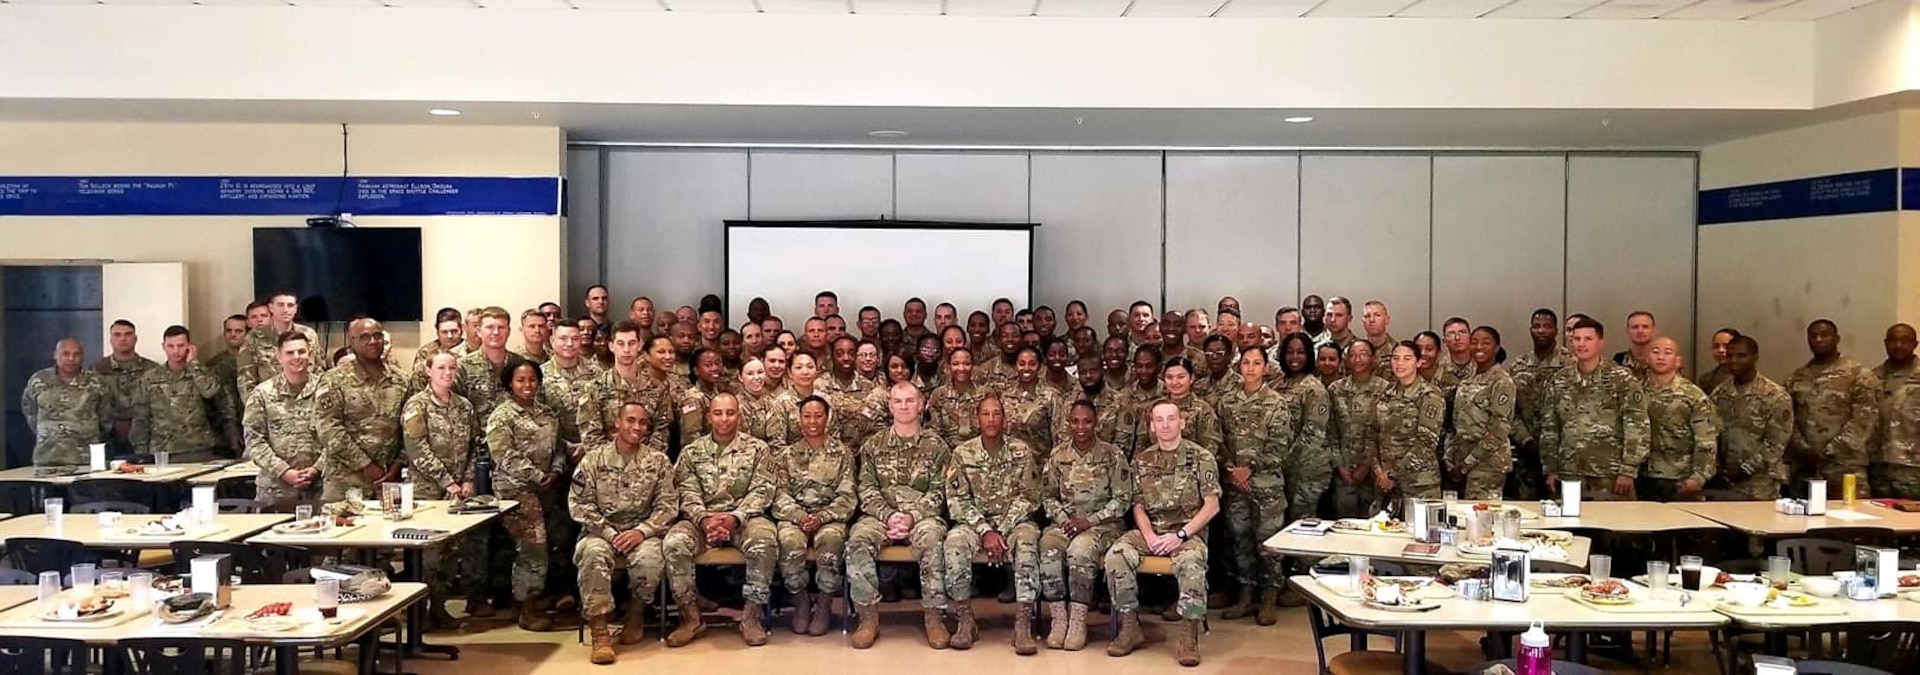 Over 100 Army Leaders Gather to Honor Dr. Martin Luther King Jr. and Reflect on His Warrior Spirit